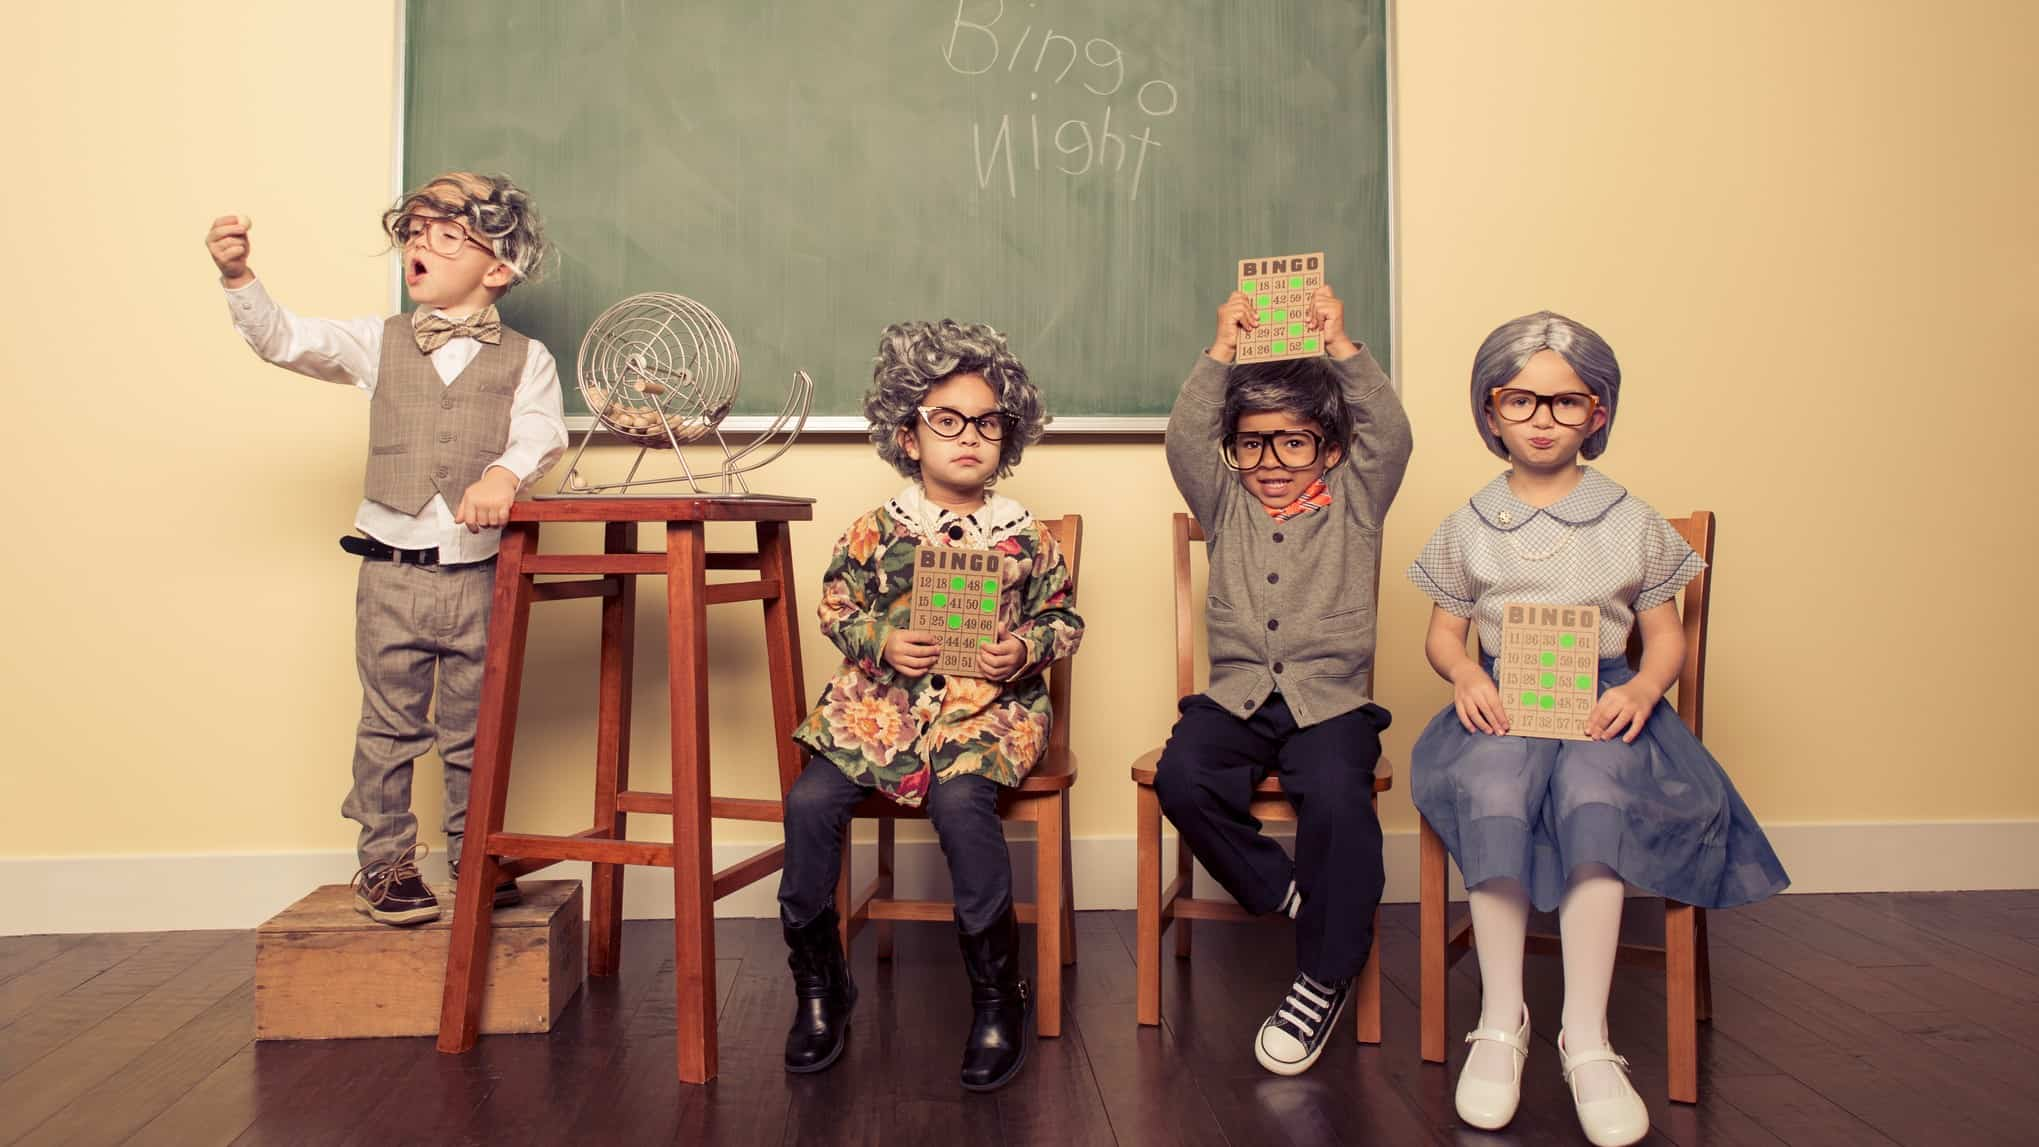 children dressed up in adult clothes at a bingo night with one child winning